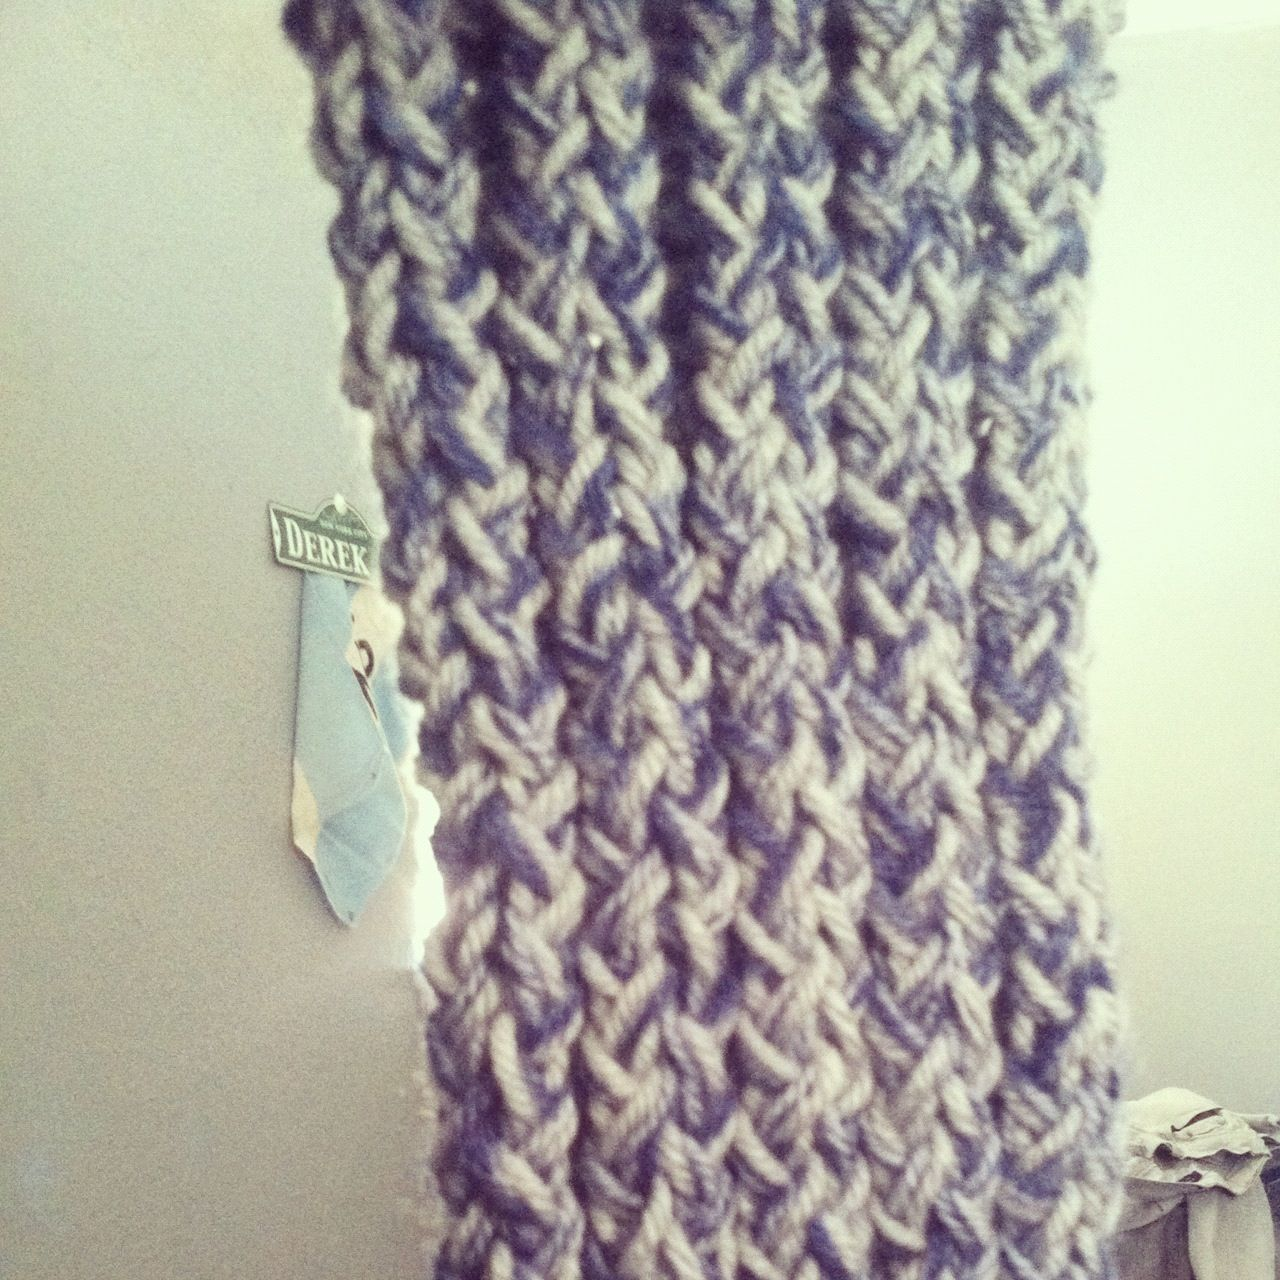 Knitting project 30%